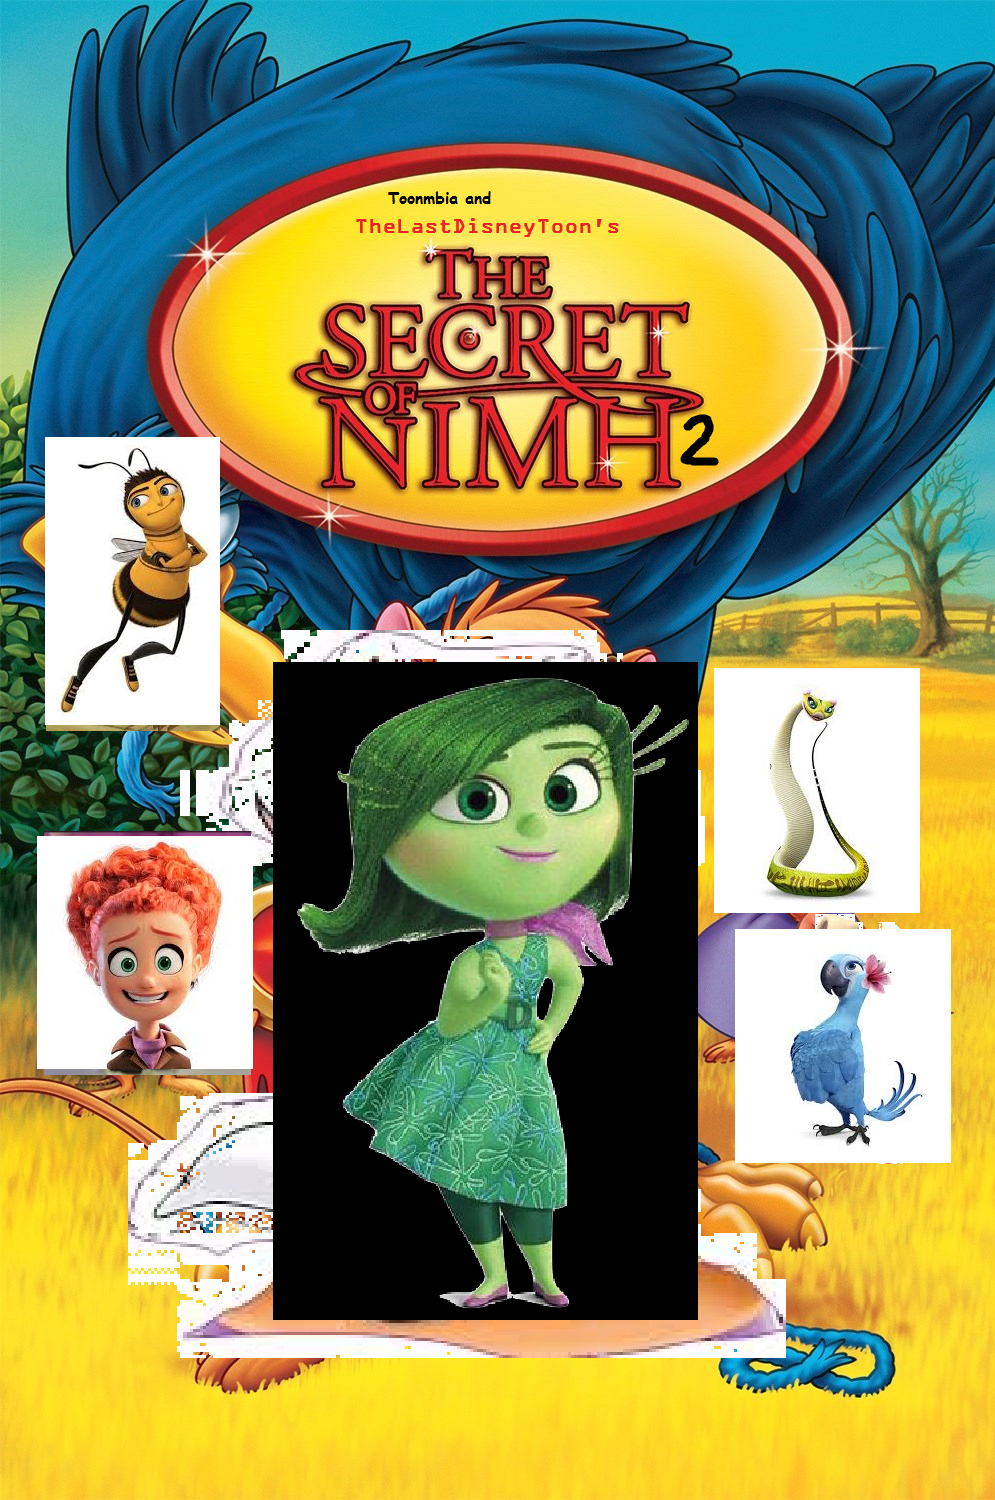 The Secret of NIMH 2 (TheLastDisneyToon and Toonmbia's Style)